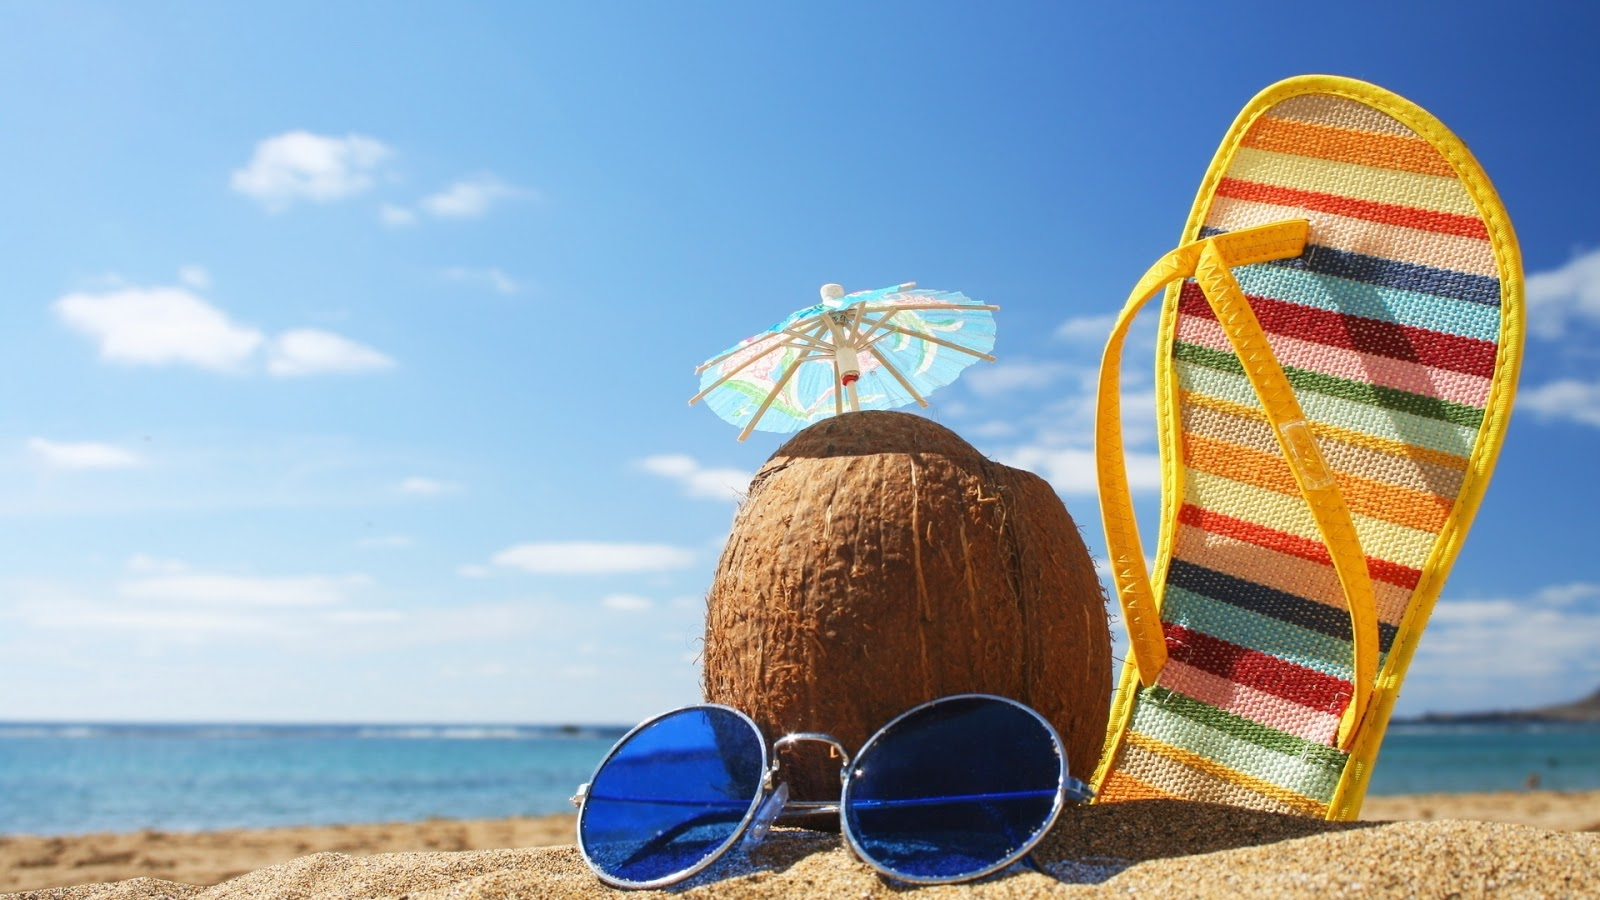 download summer fun wallpaper which is under the summer wallpapers 1600x900